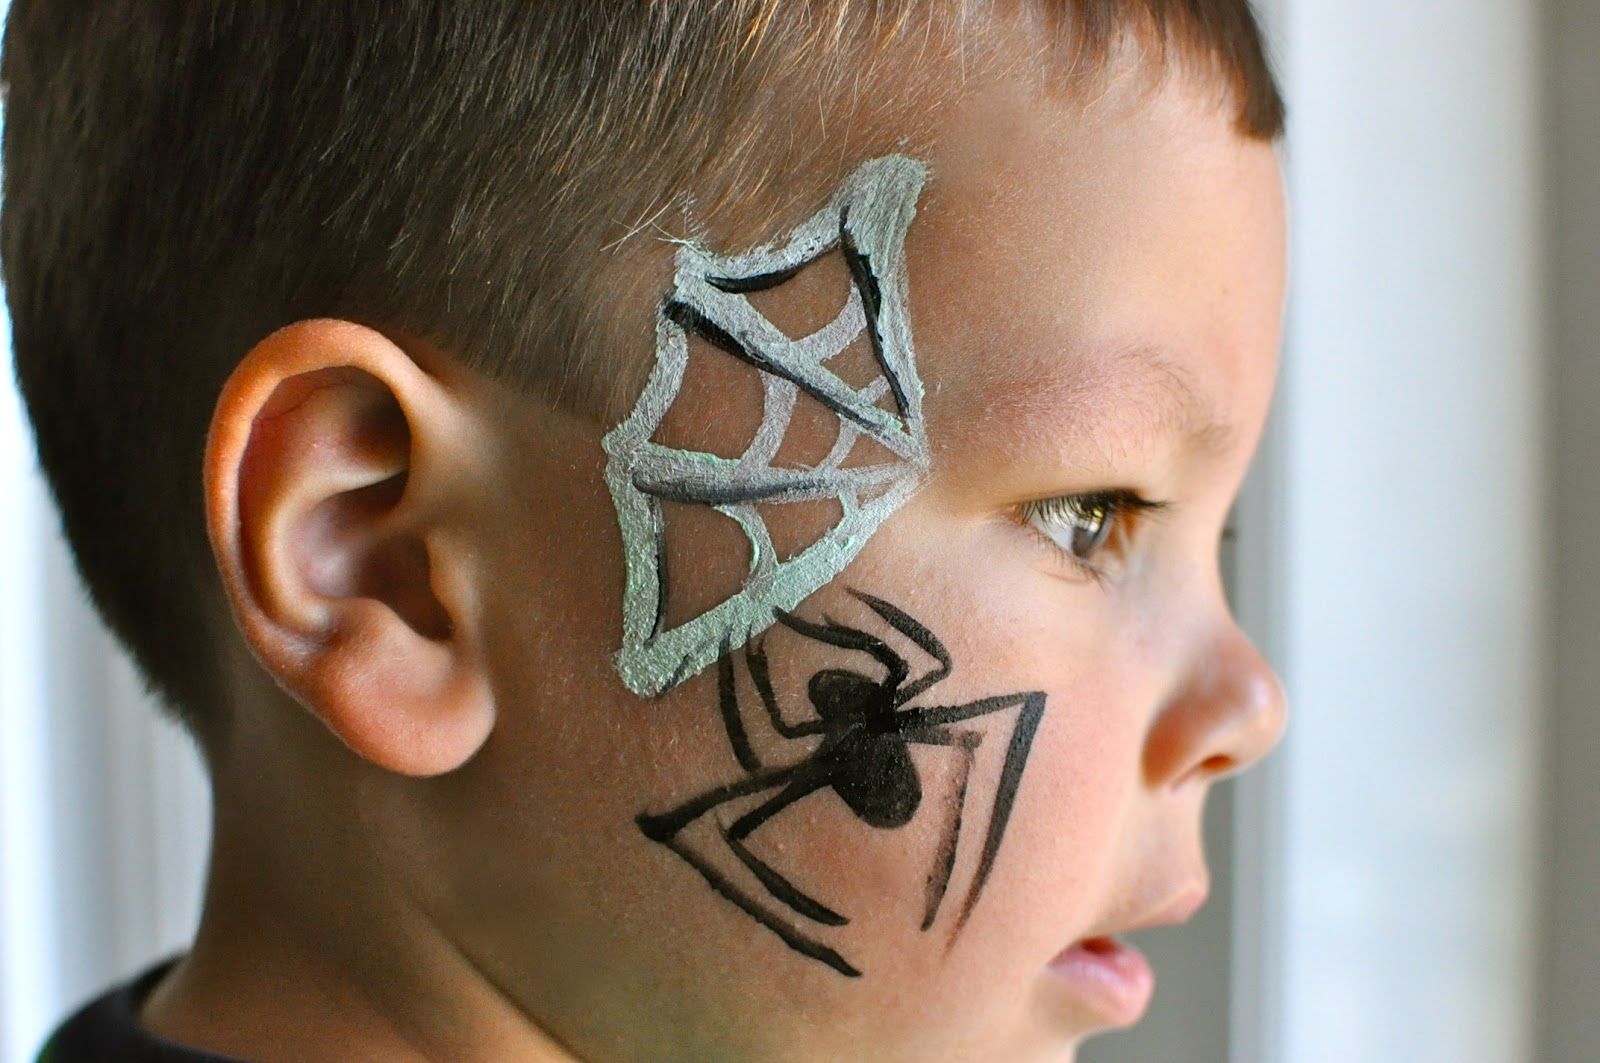 Just be happy!: Face Paint = Fun!